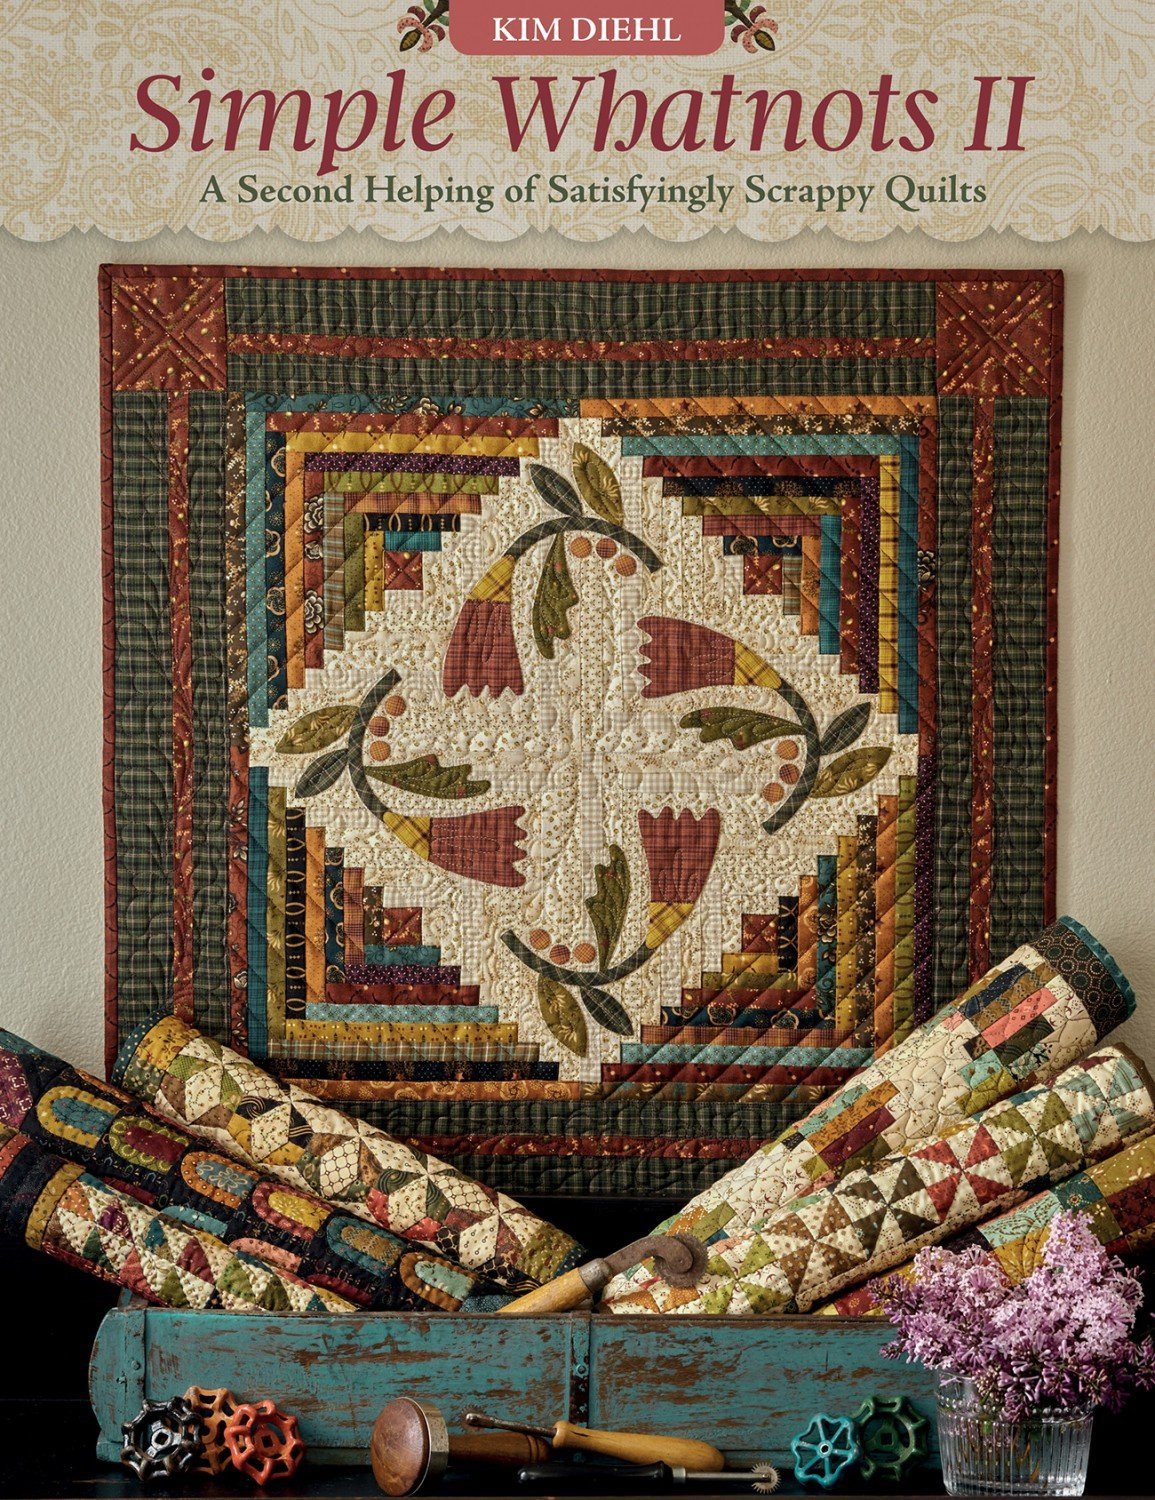 Simple Whatnots II A Second Helping of Satisfyingly Scrappy Quilts ~ RELEASE DATE APR 1/21 ~